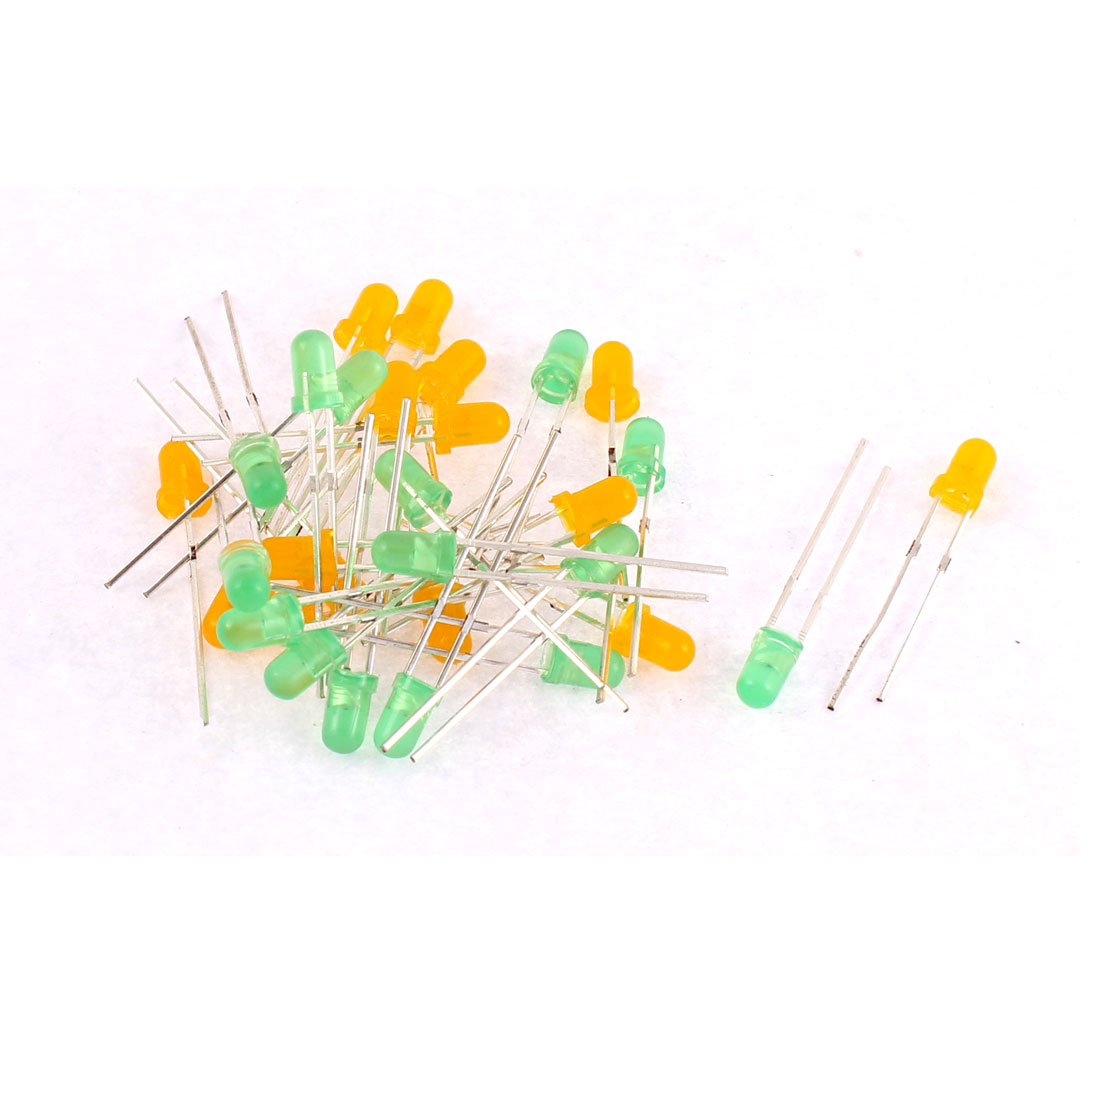 30pcs 3mm Green Yellow Diffused Color Emitting Diode LED Light Bulds